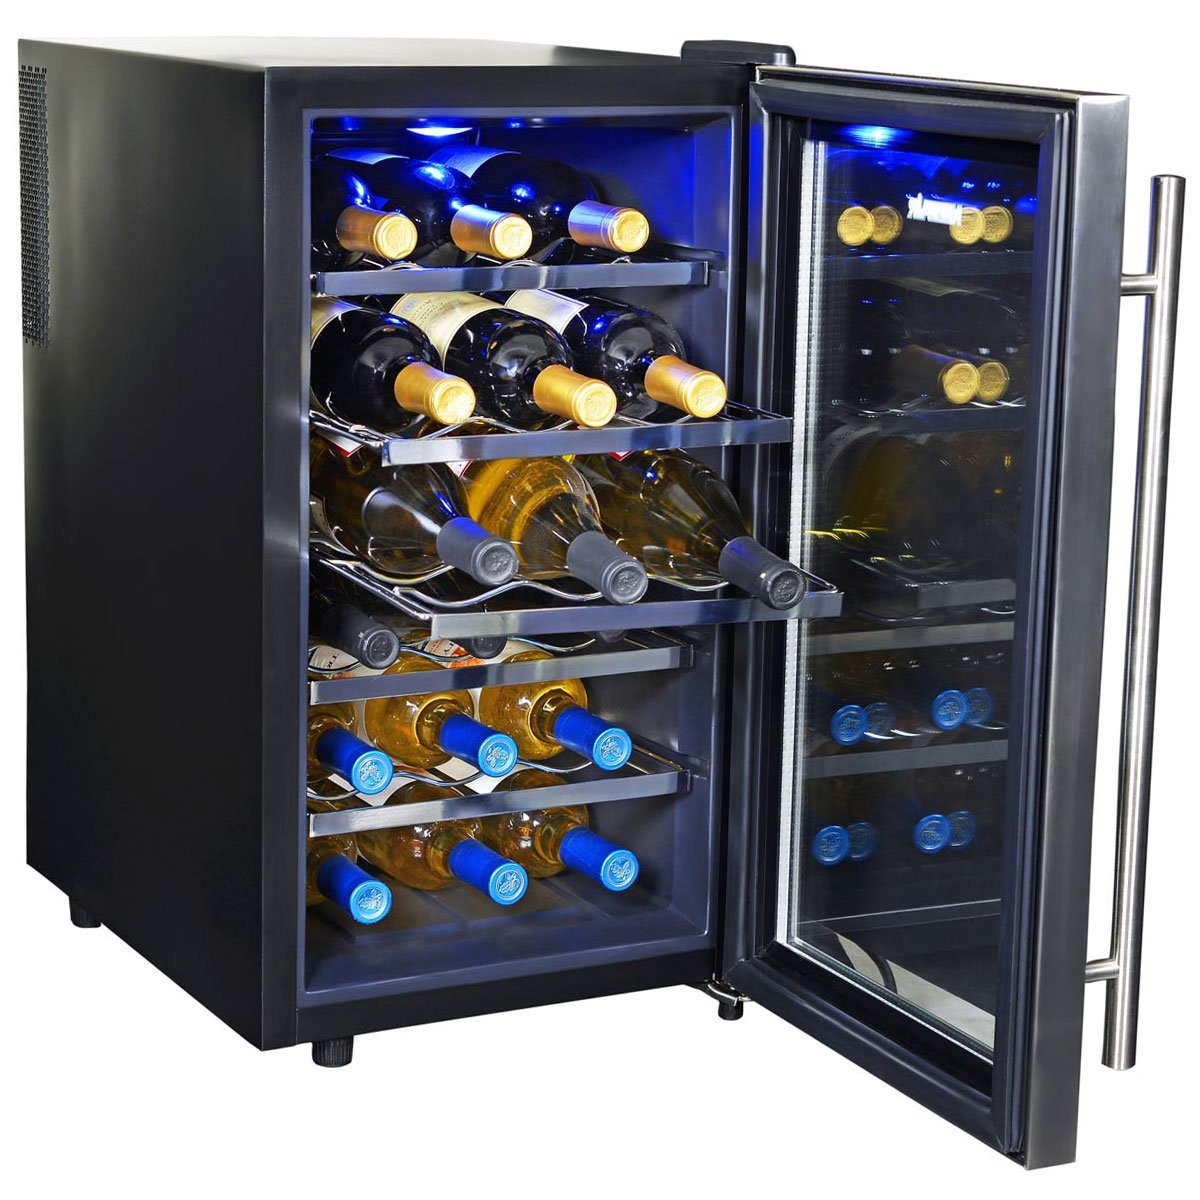 How To Store Wine In Wine Cooler?